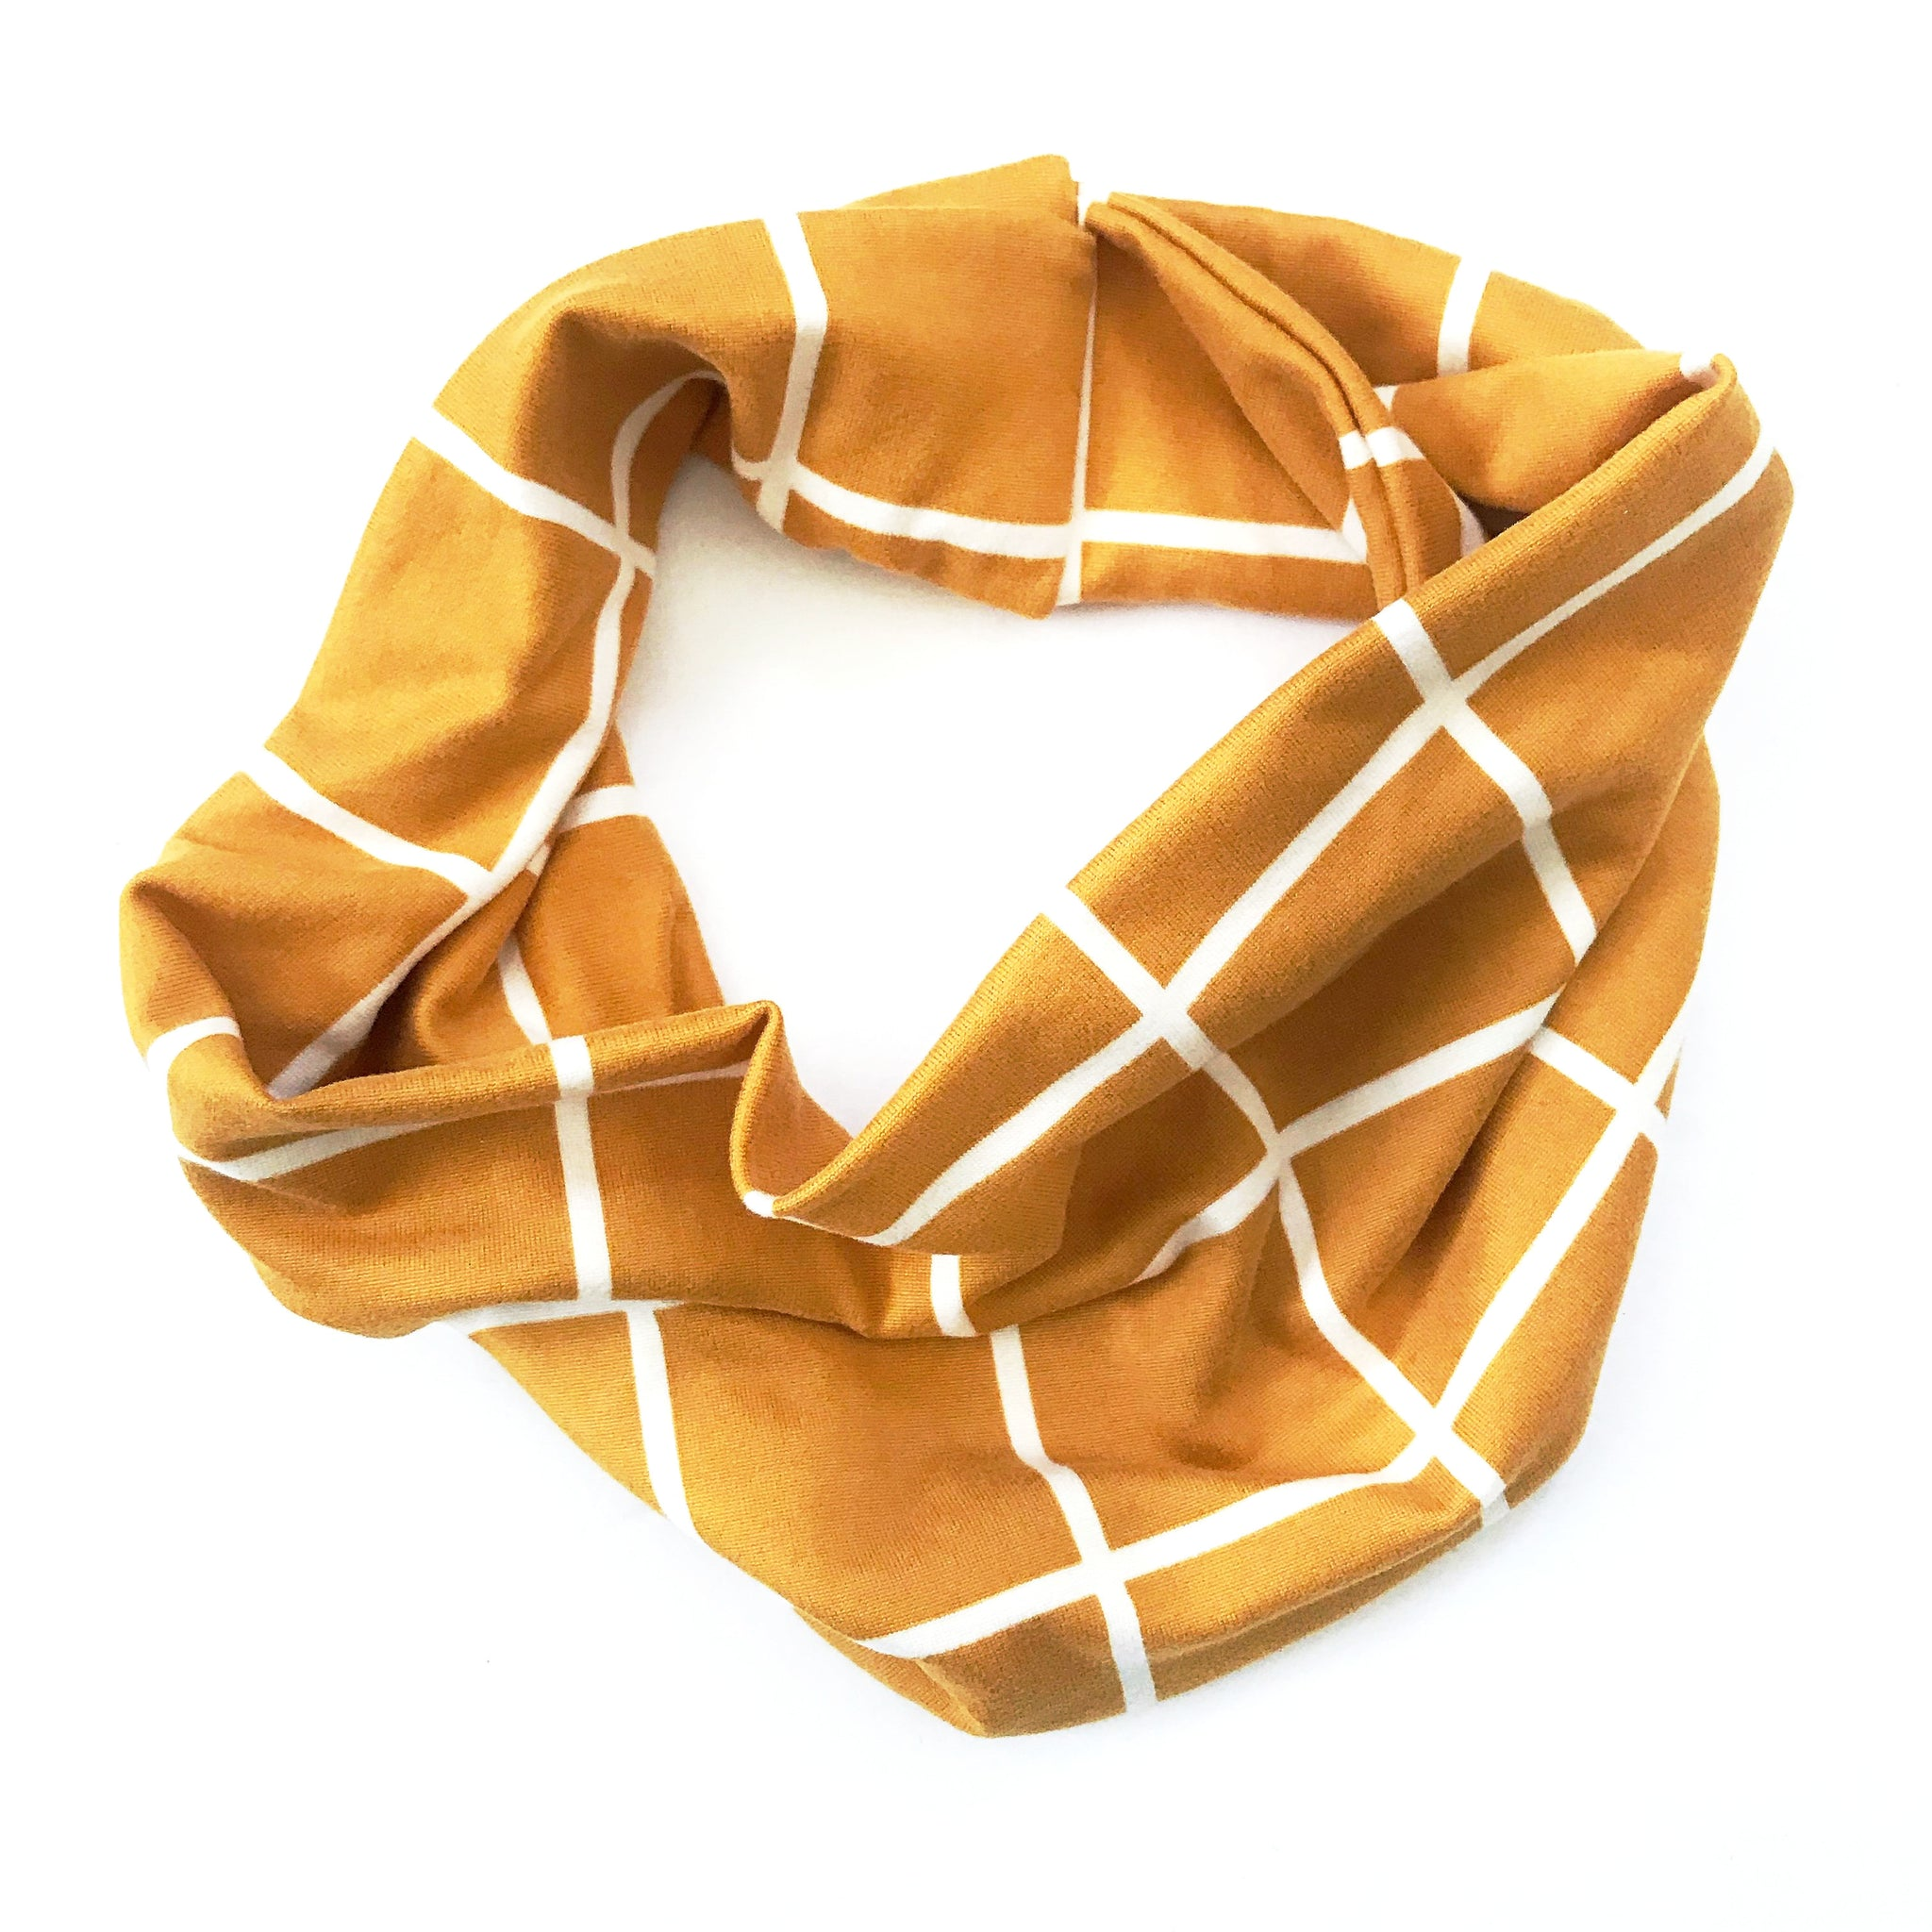 So Square Double Twist Headband